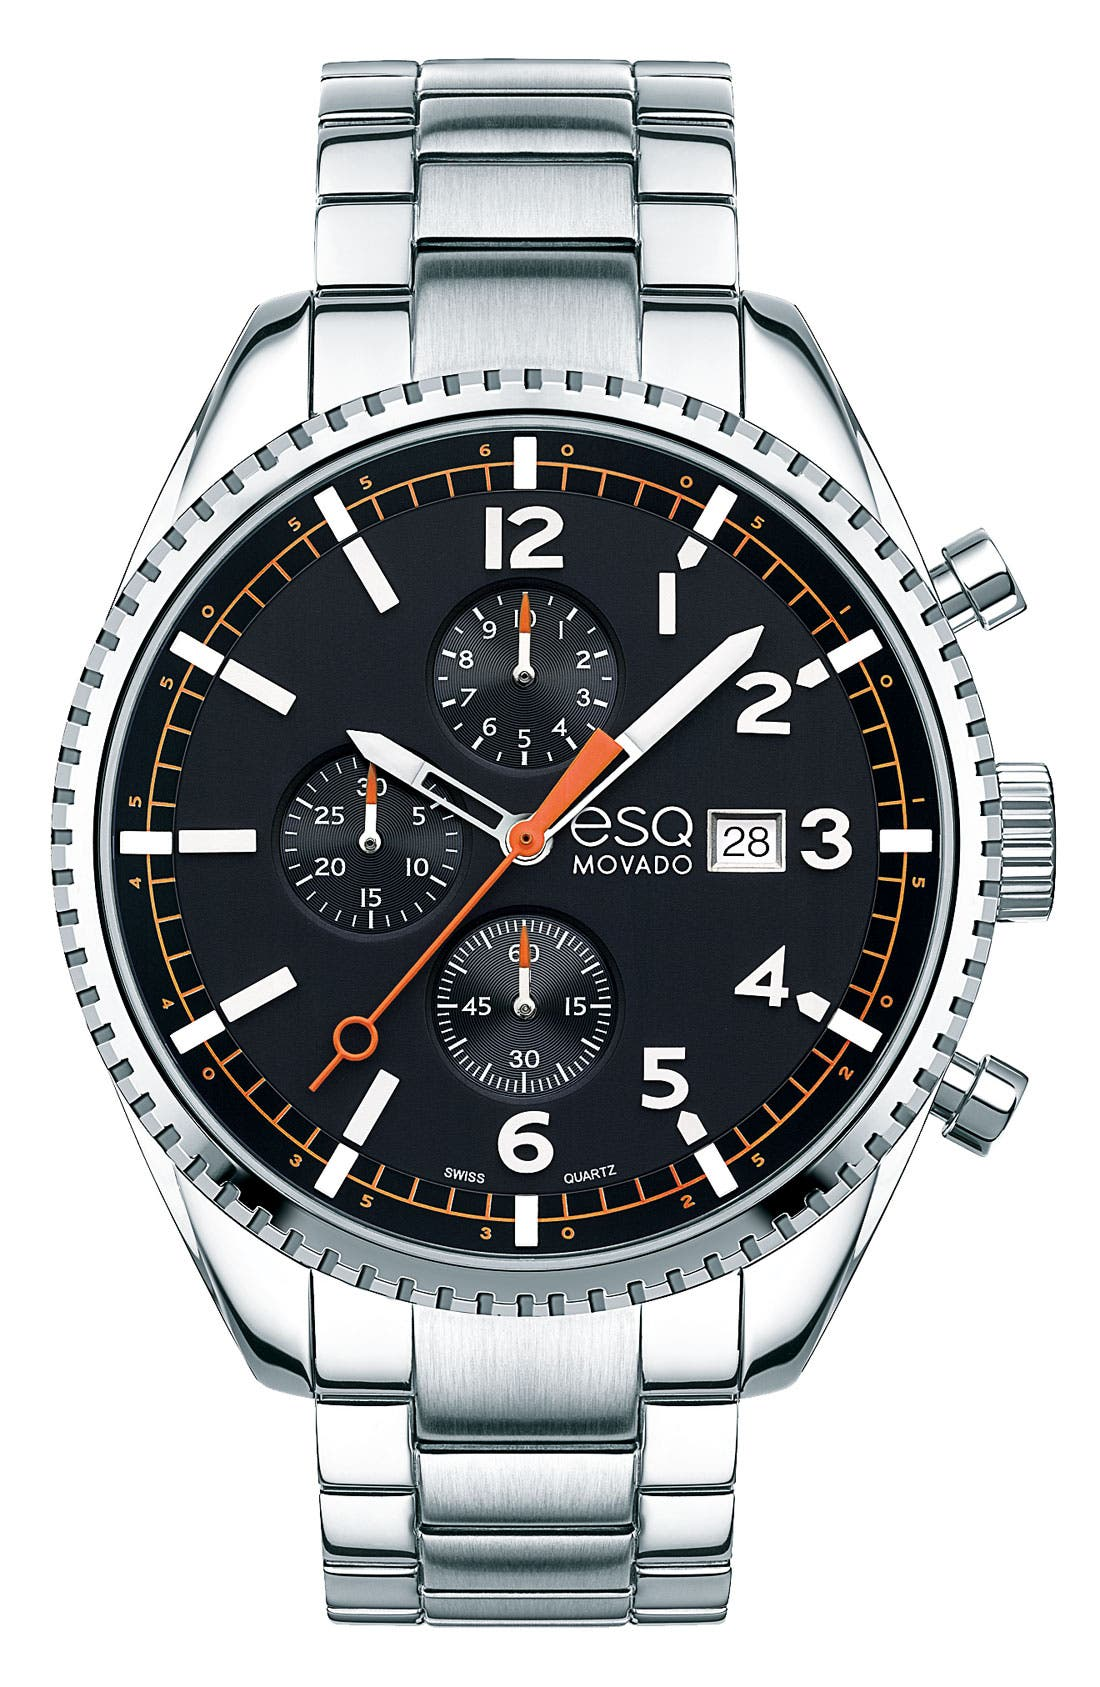 Main Image - ESQ Movado 'Catalyst' Chronograph Bracelet Watch, 44mm